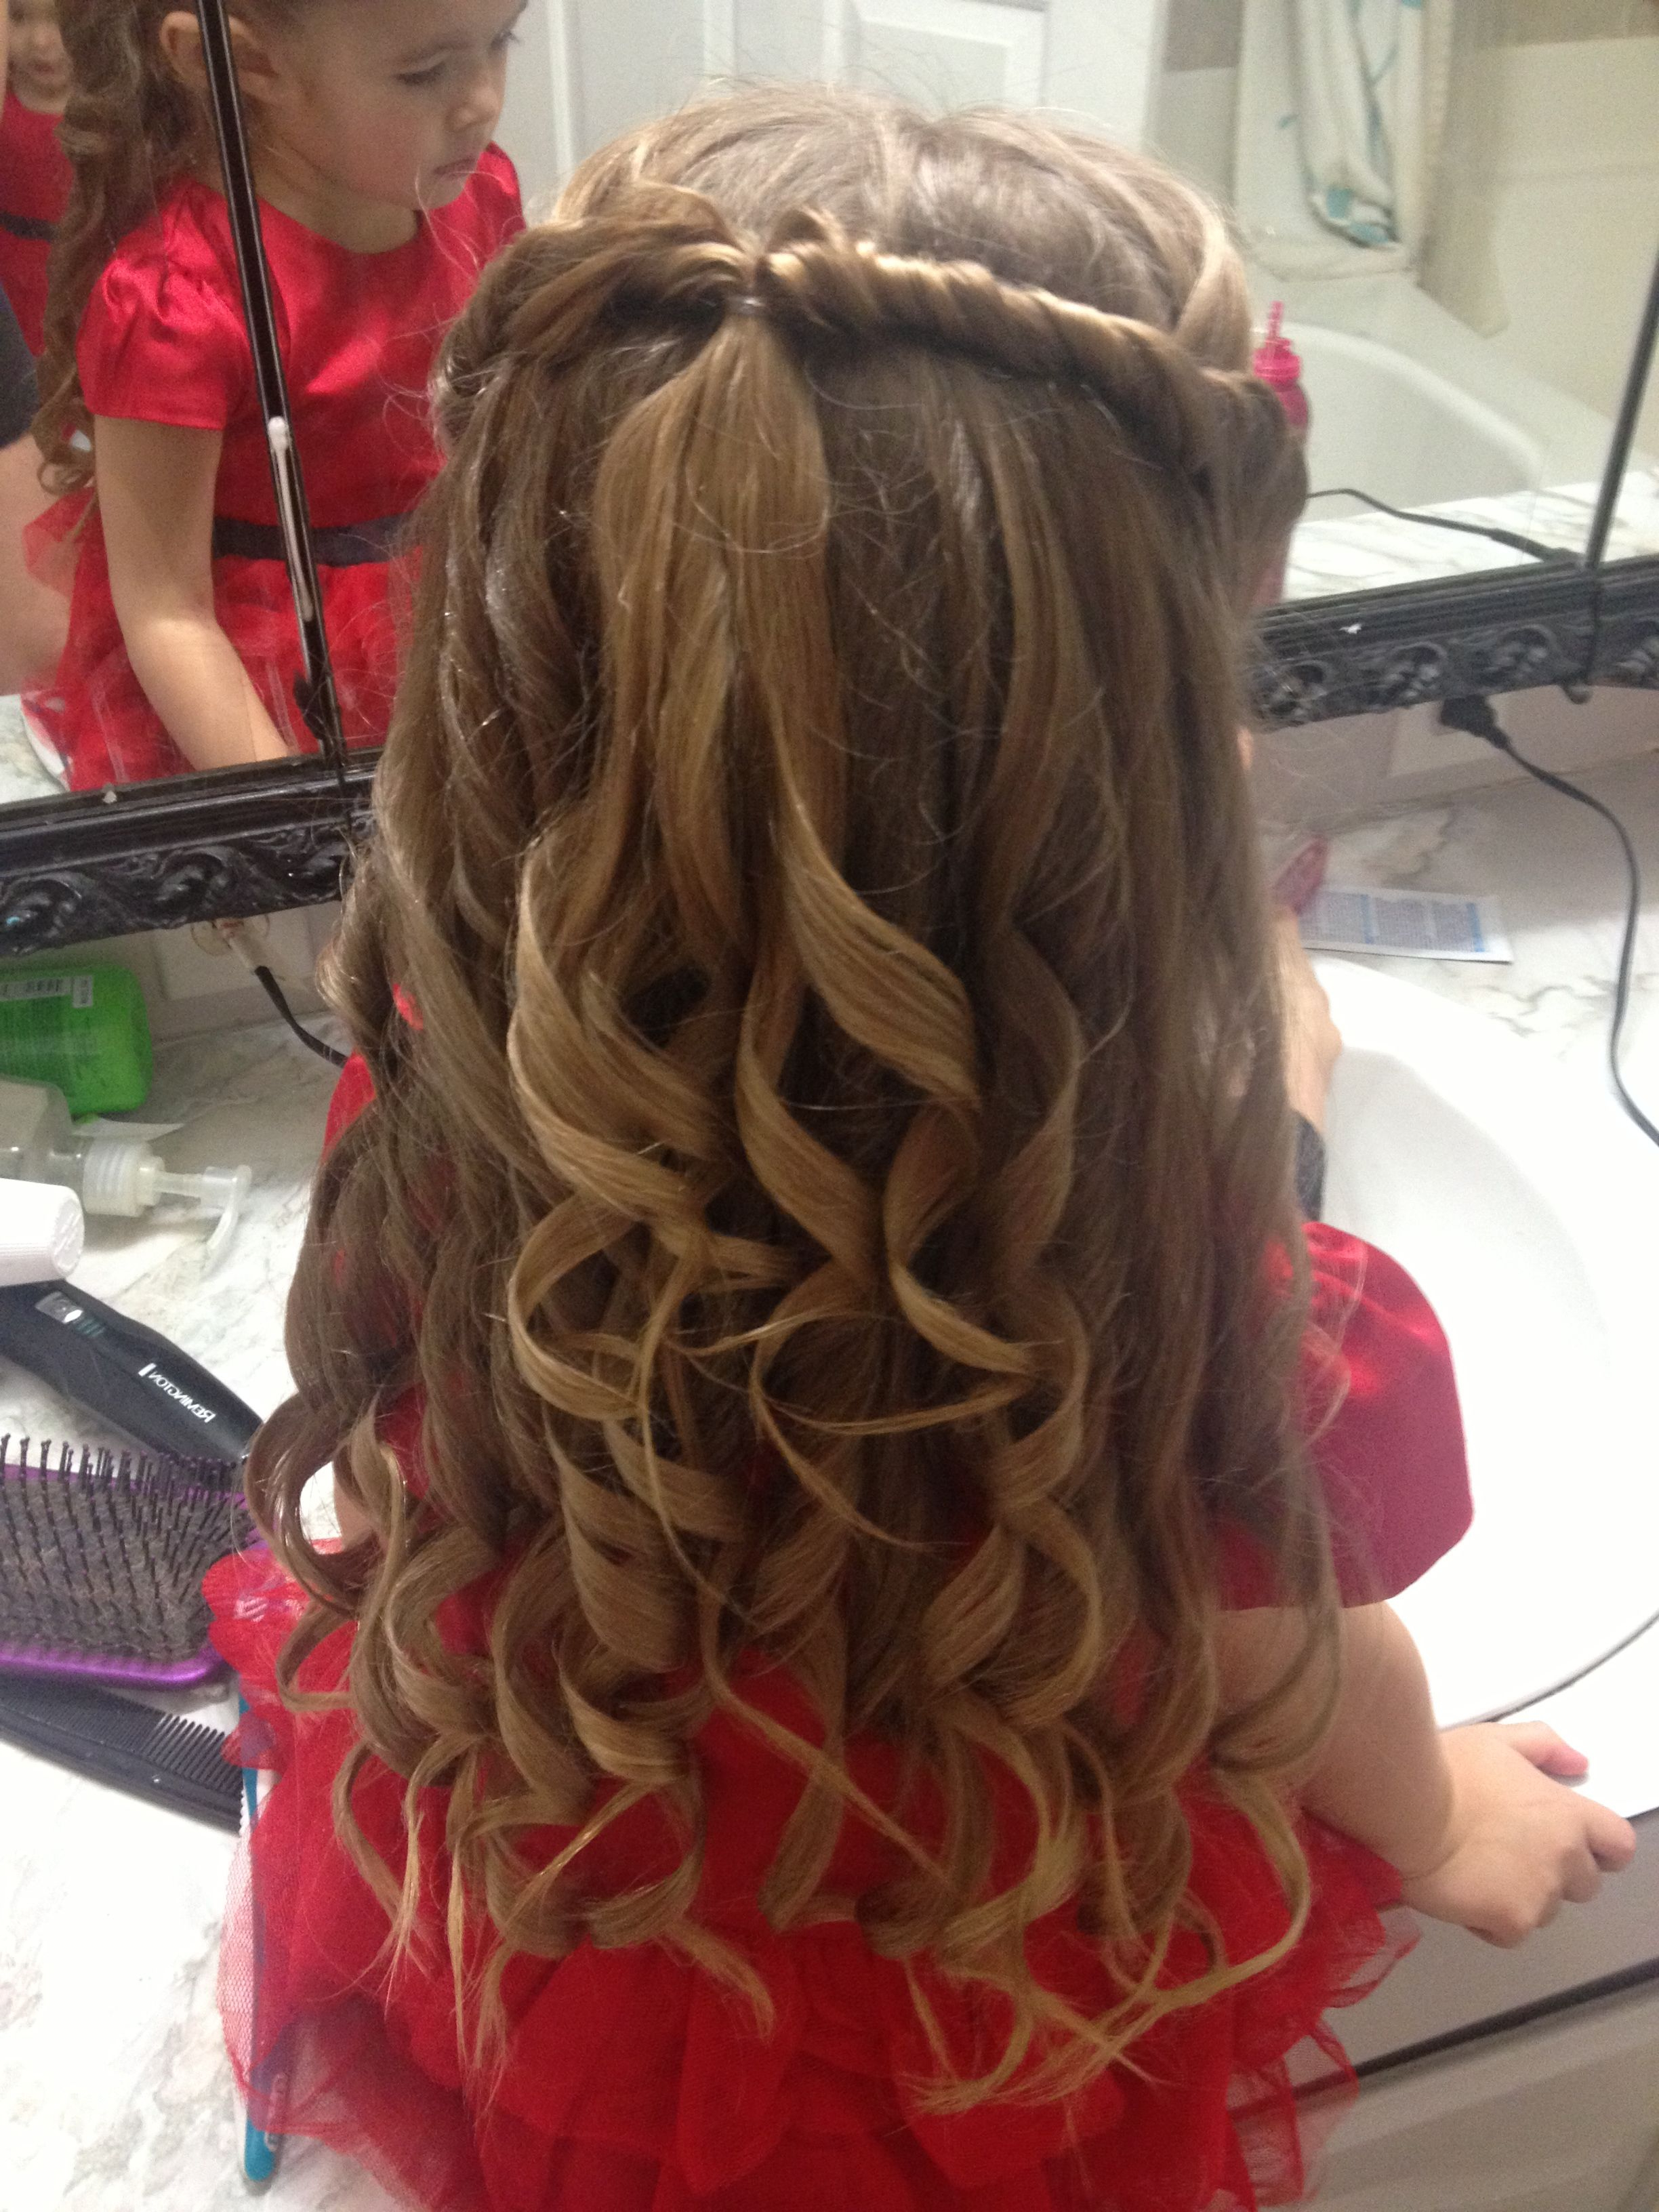 Cute Little Girls Hair Style For A Special Occasion (View 11 of 25)